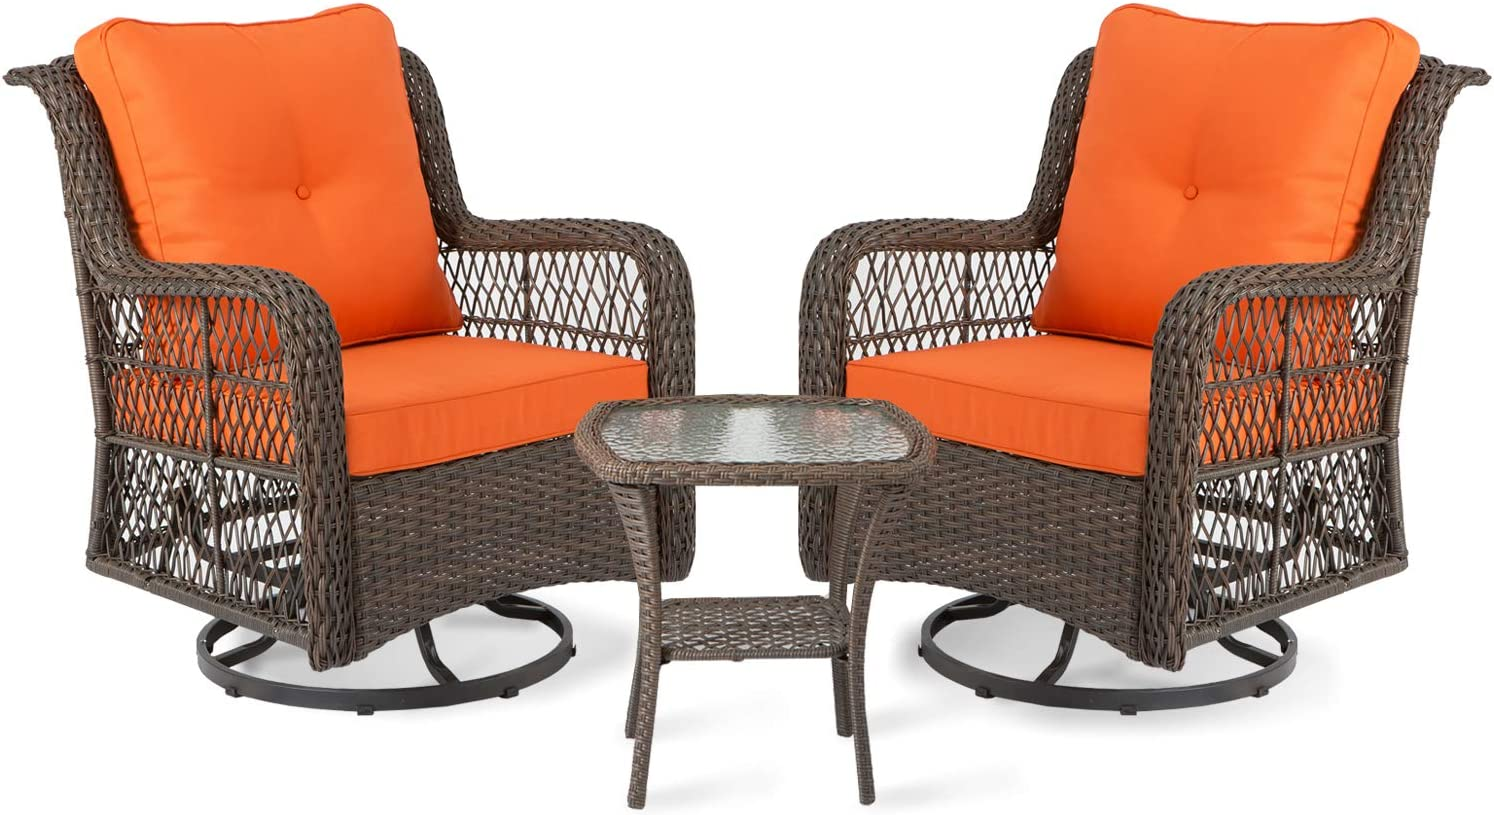 aoxun 3 piece rocking rattan chair outdoor patio bistro furniture sets clearance 2 cushioned swivel wicker chair with coffee table orange